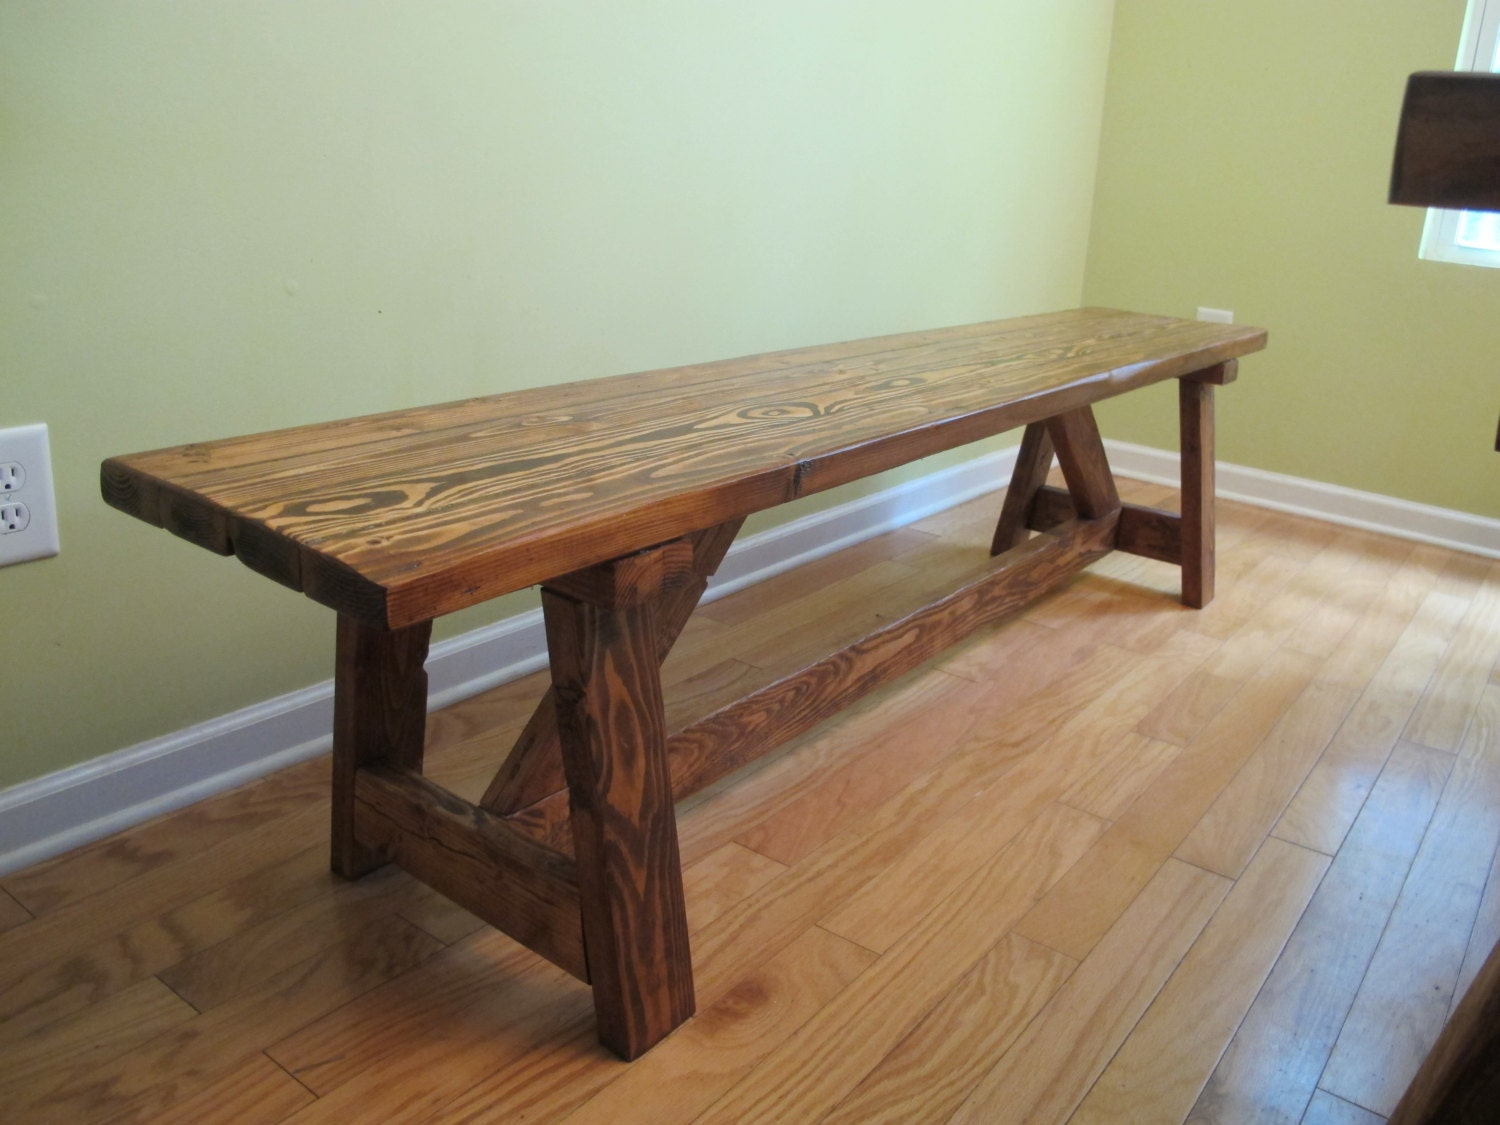 Rustic Wooden Benches ~ Farmhouse rustic wood bench by ngfoothillsfurniture on etsy